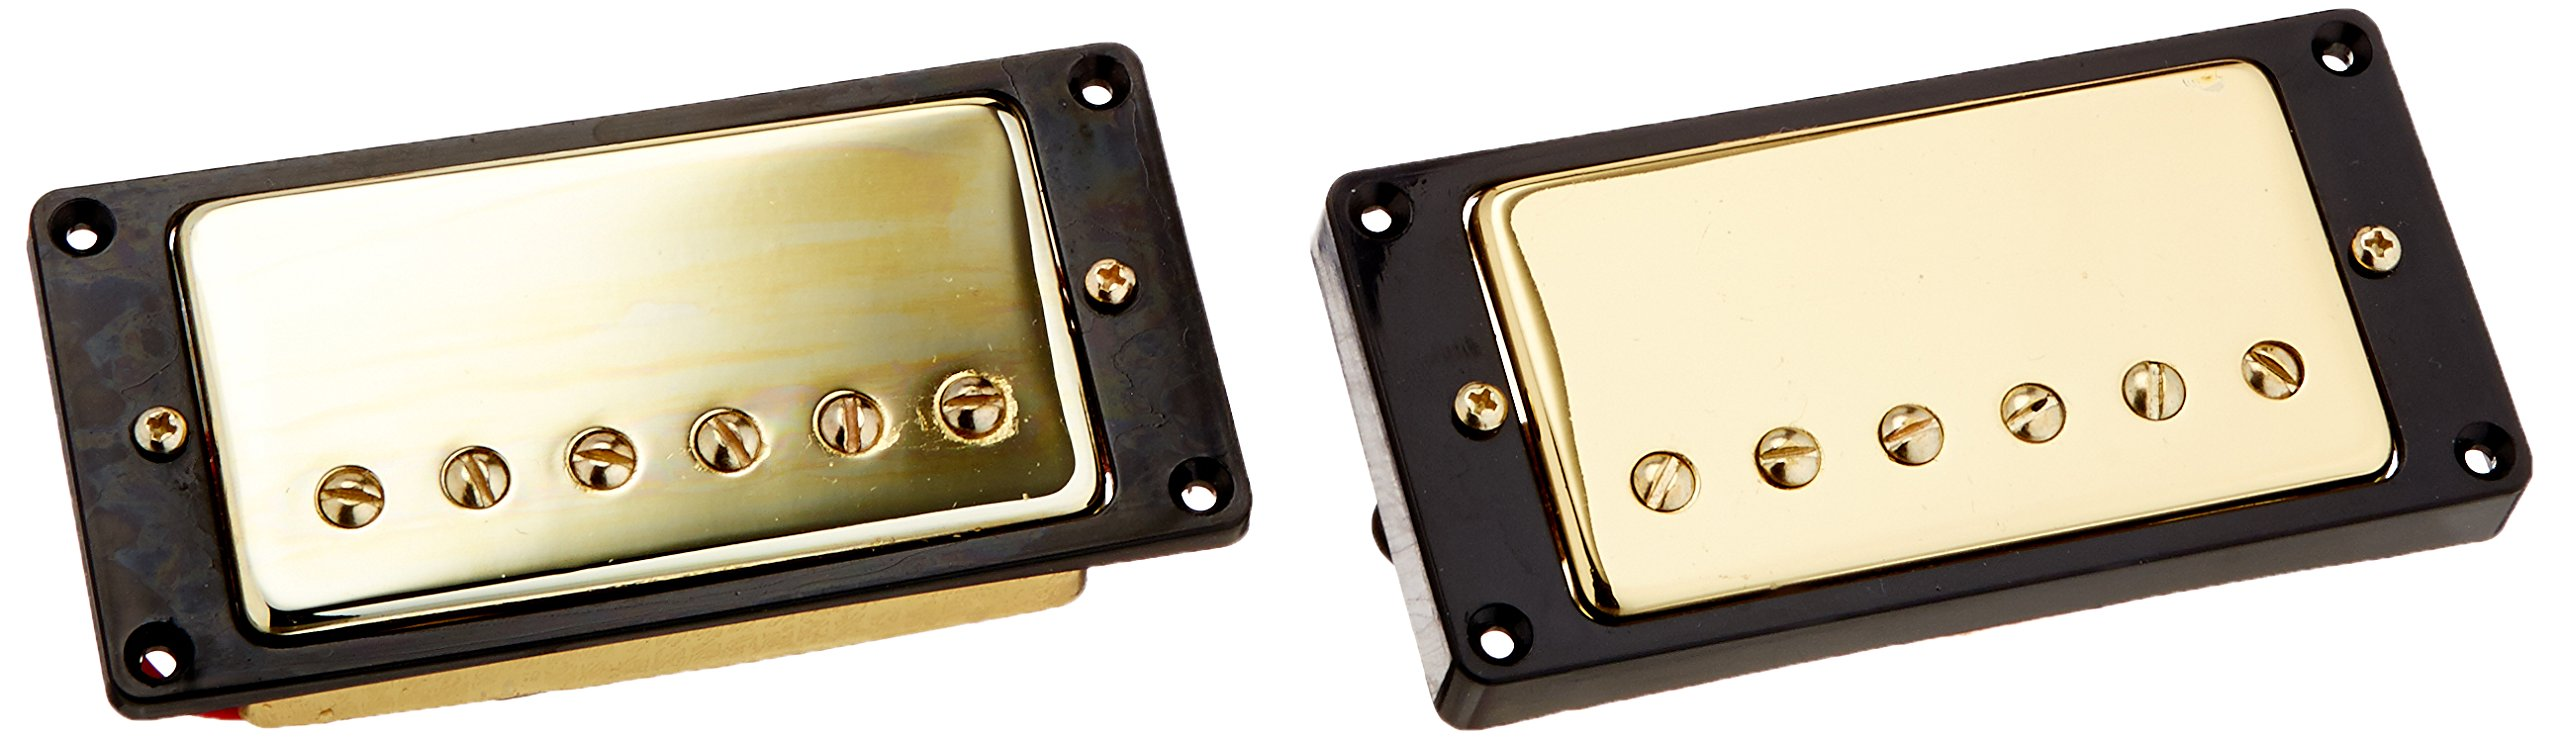 Kmise 1set Humbucker Pickup Gold for Gibson Les Paul Replacement product image